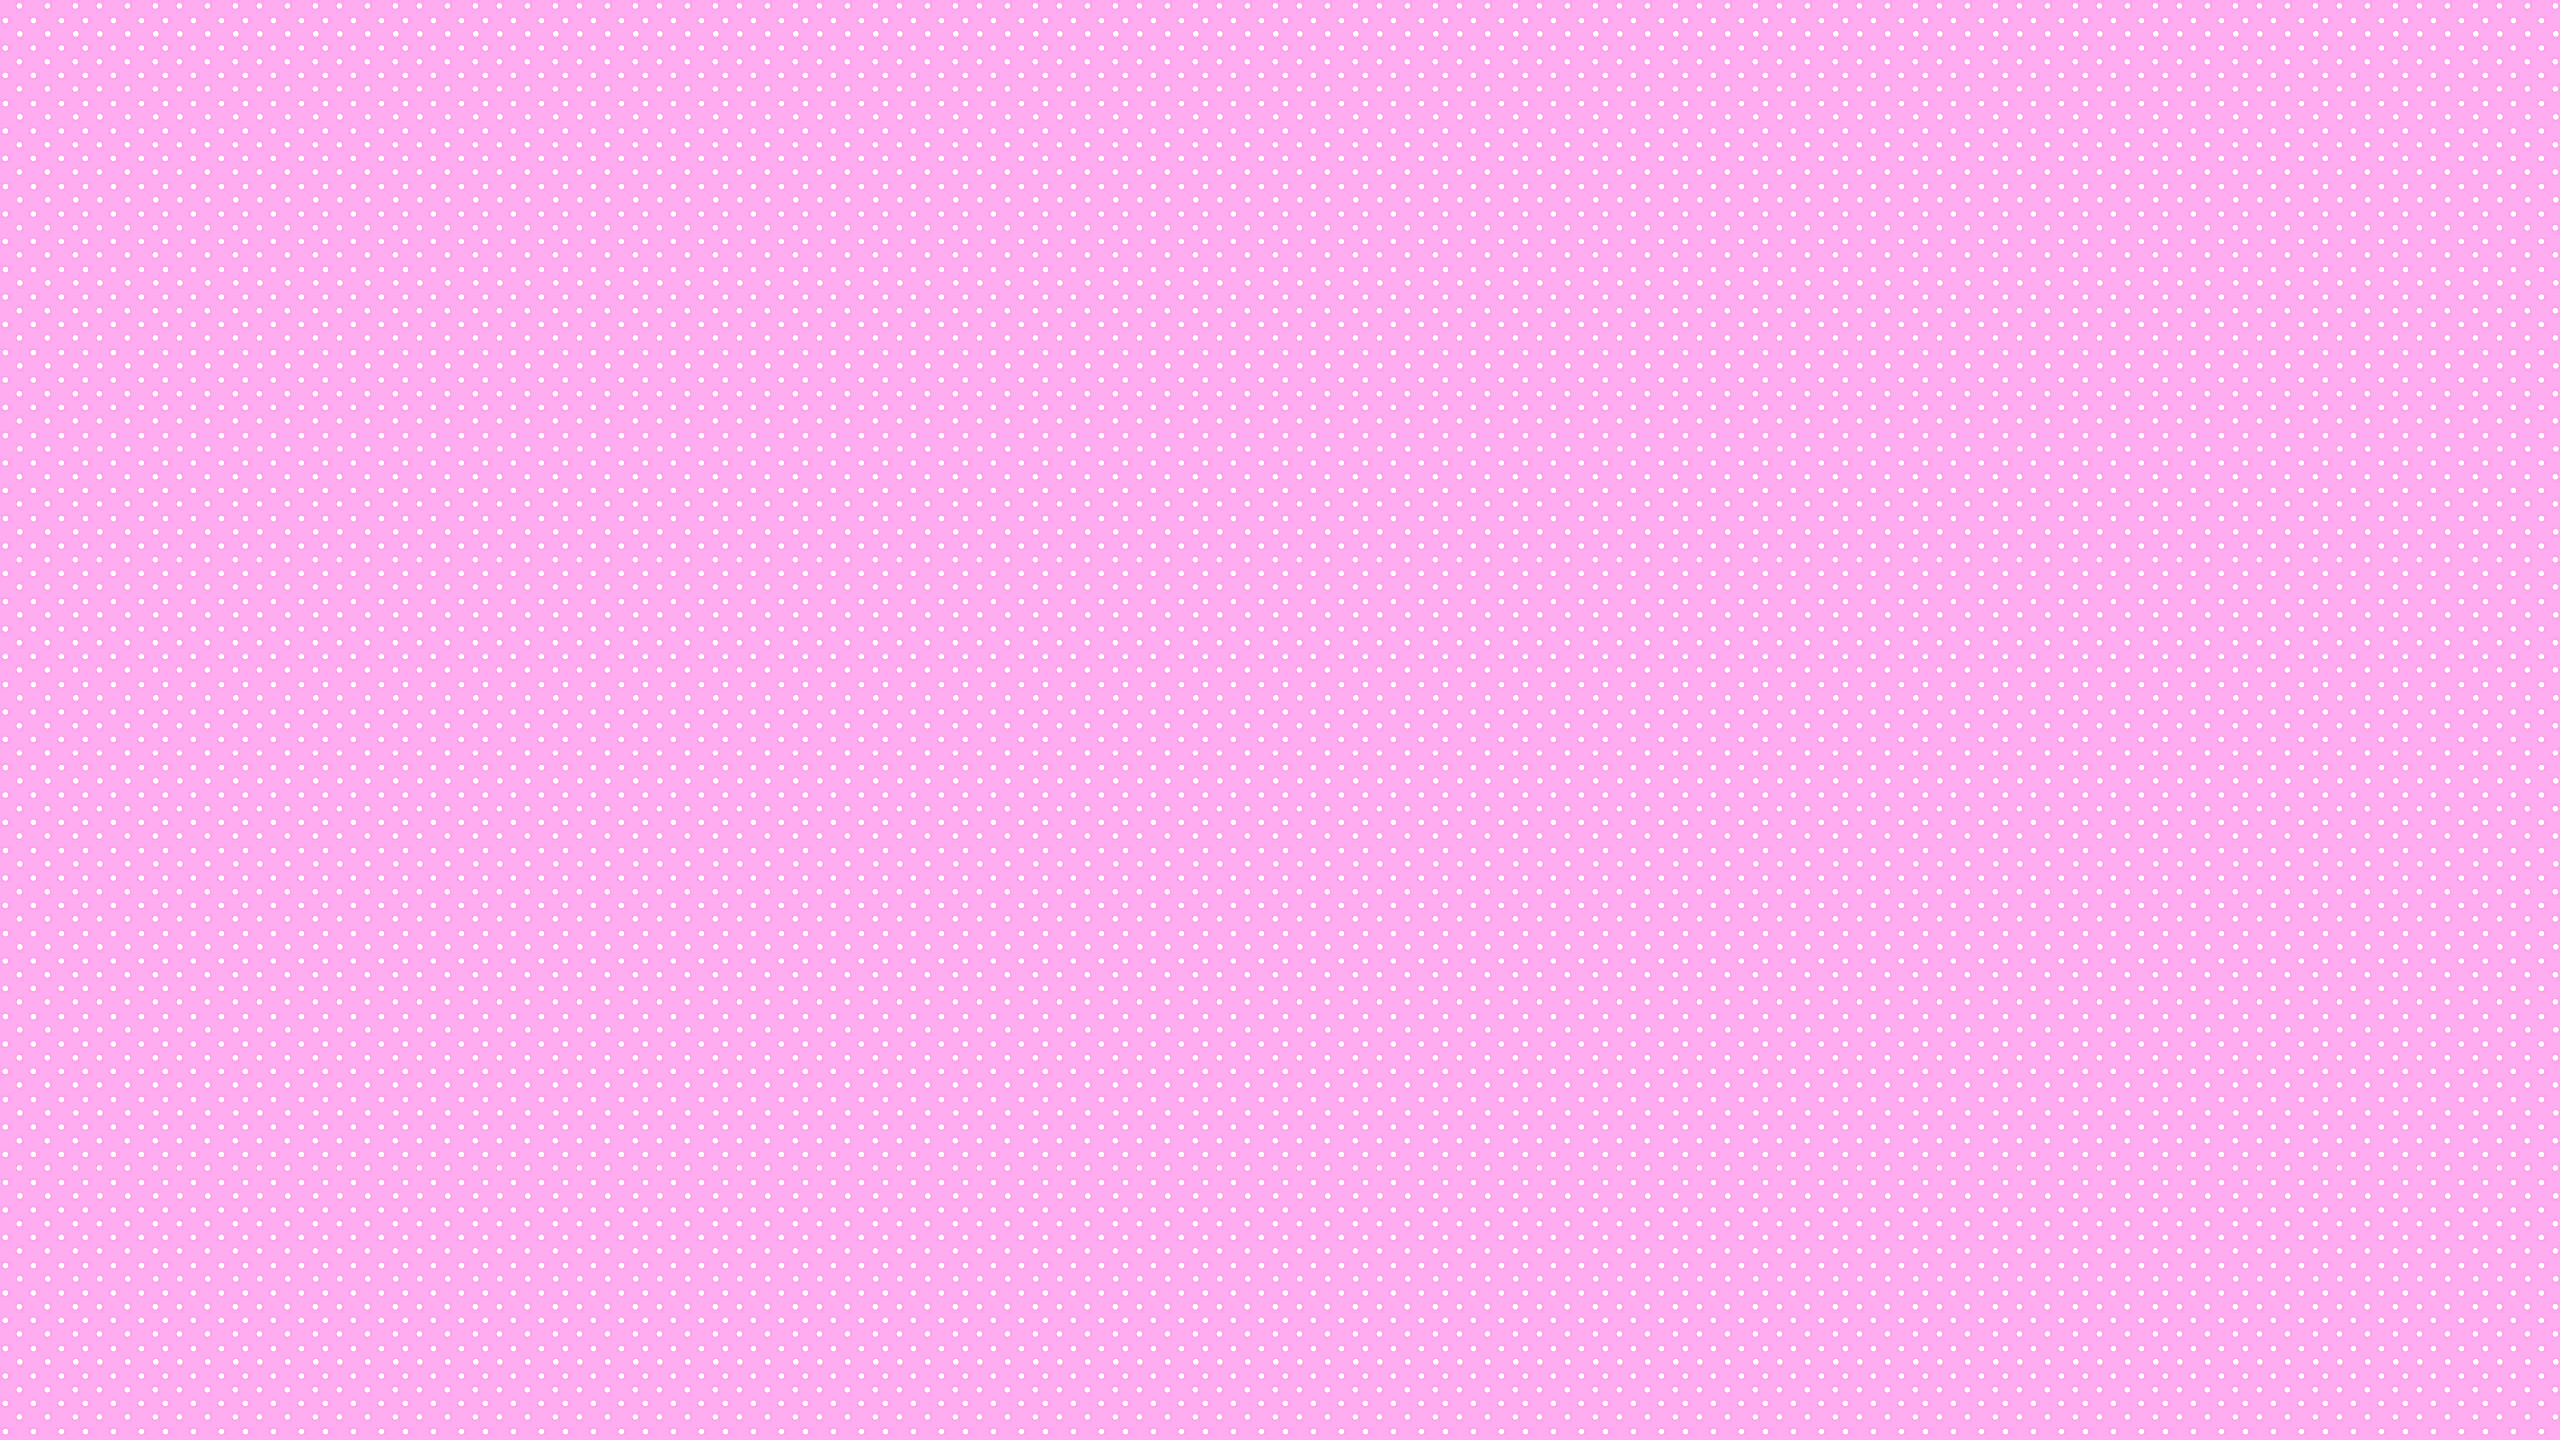 Res: 2560x1440, Pink Backgrounds Wallpaper Wallpapersafari Pastel Dots Desktop Is Easy Just  Save The. house of plan ...